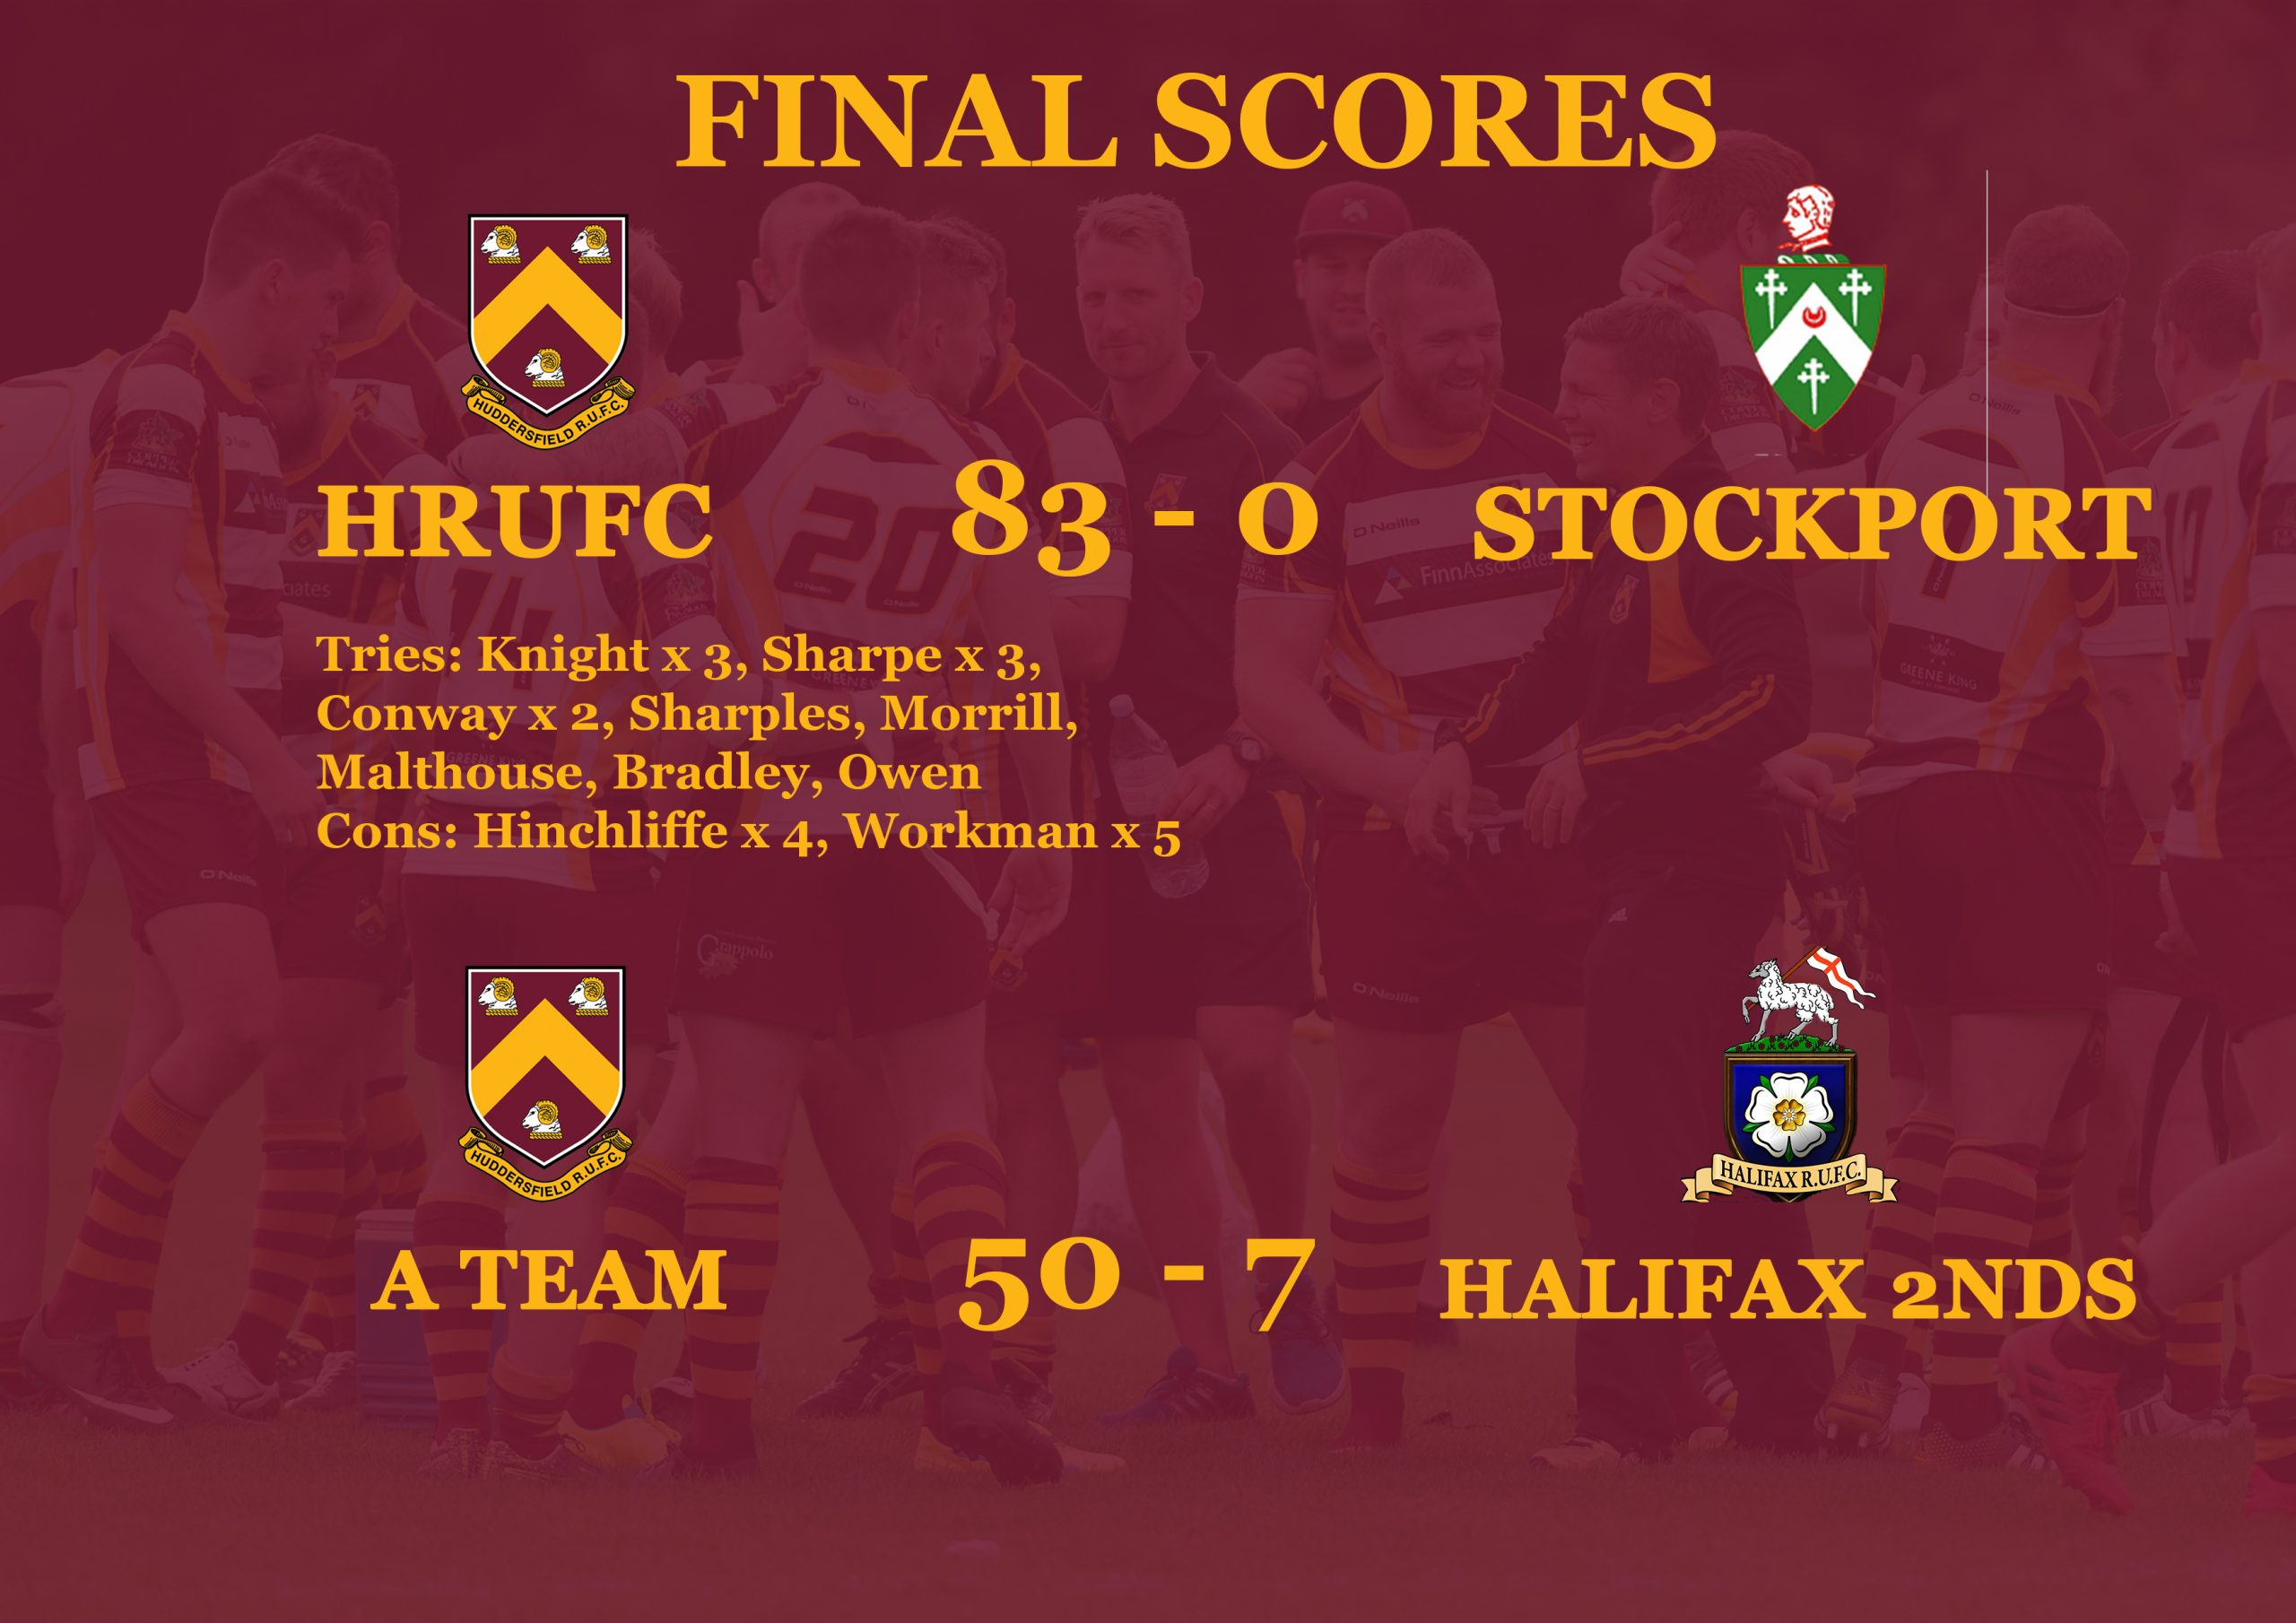 final_score_firsts_anda_team_stockport